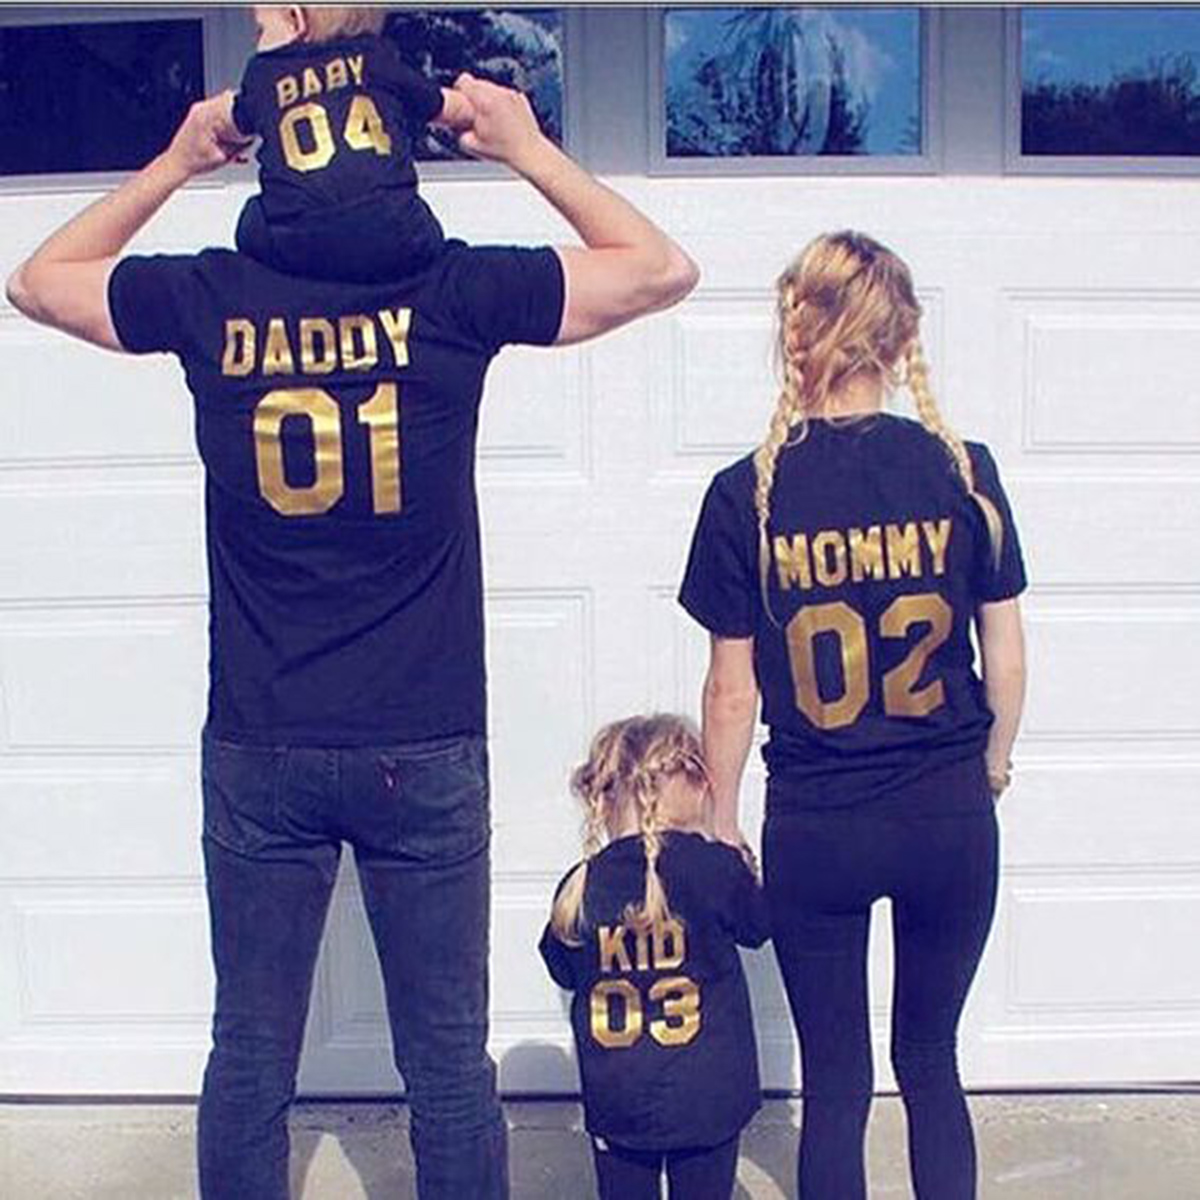 family look clothing short sleeve t shirt daddy mommy kid baby girl boy clothes family matching. Black Bedroom Furniture Sets. Home Design Ideas